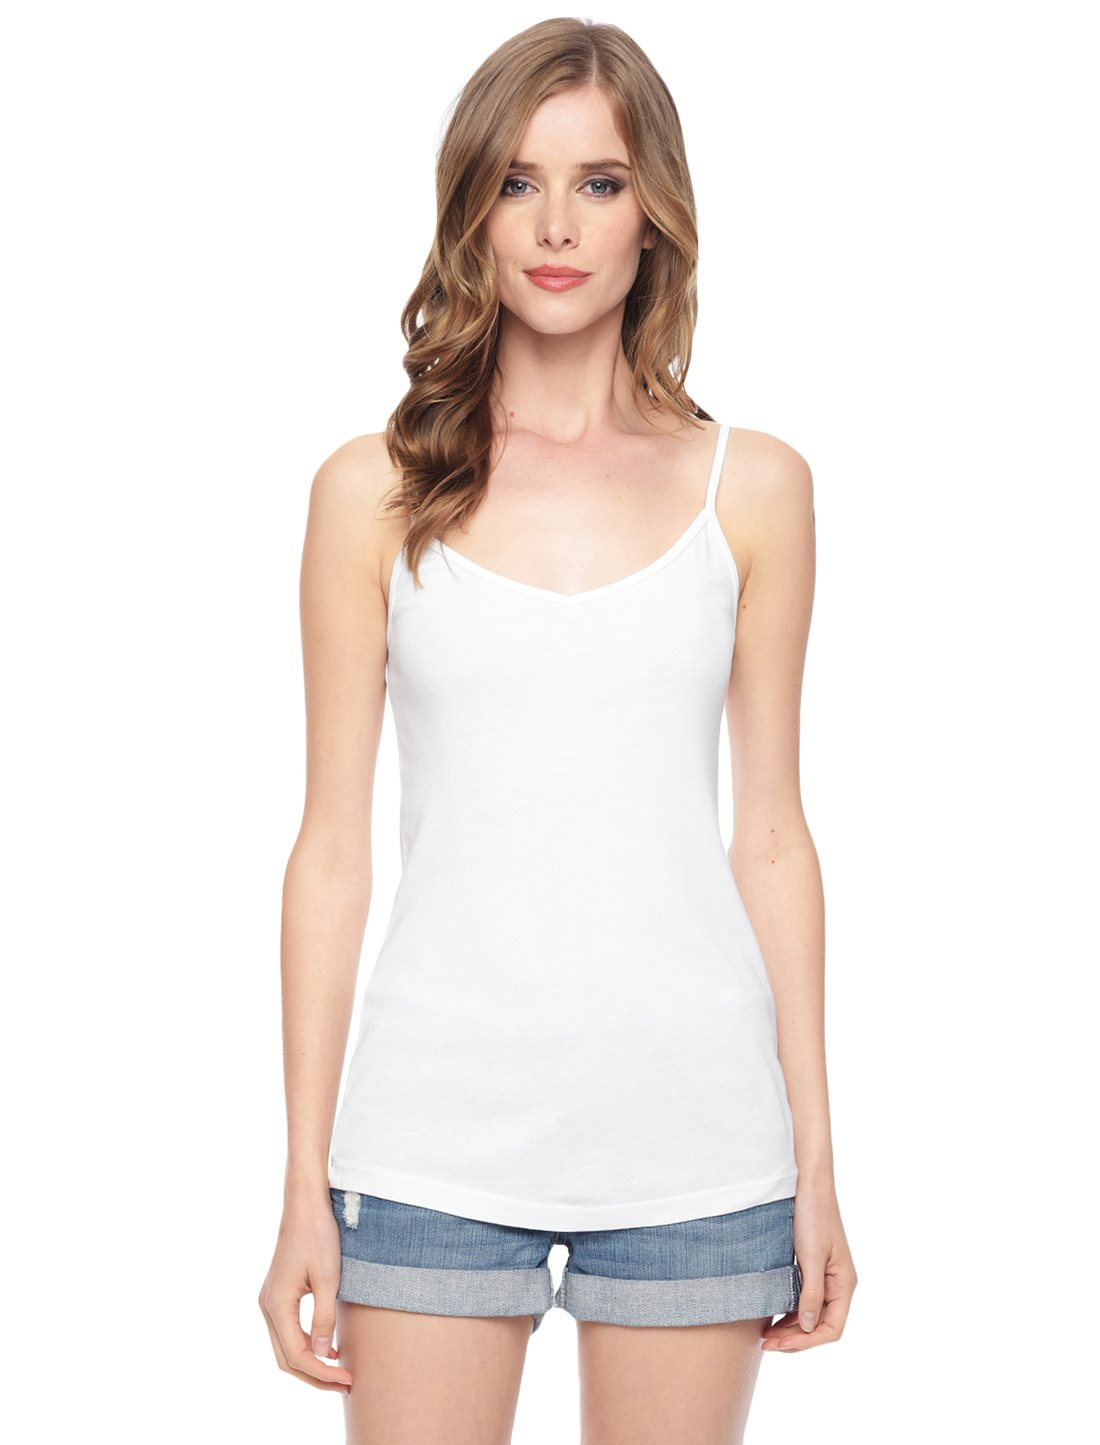 Tanks & Camis. Features Best Sellers The Love List Lovely Layers Wear to Work Most Loved Looks Online Exclusives Clothing New Arrivals. Tops Shirts & Blouses Must-Have Tees Tanks & Camis Sleeveless Short Sleeve Long Sleeve Outfit-Making Tops Work-Perfect Tops Hoodies & Sweatshirts.